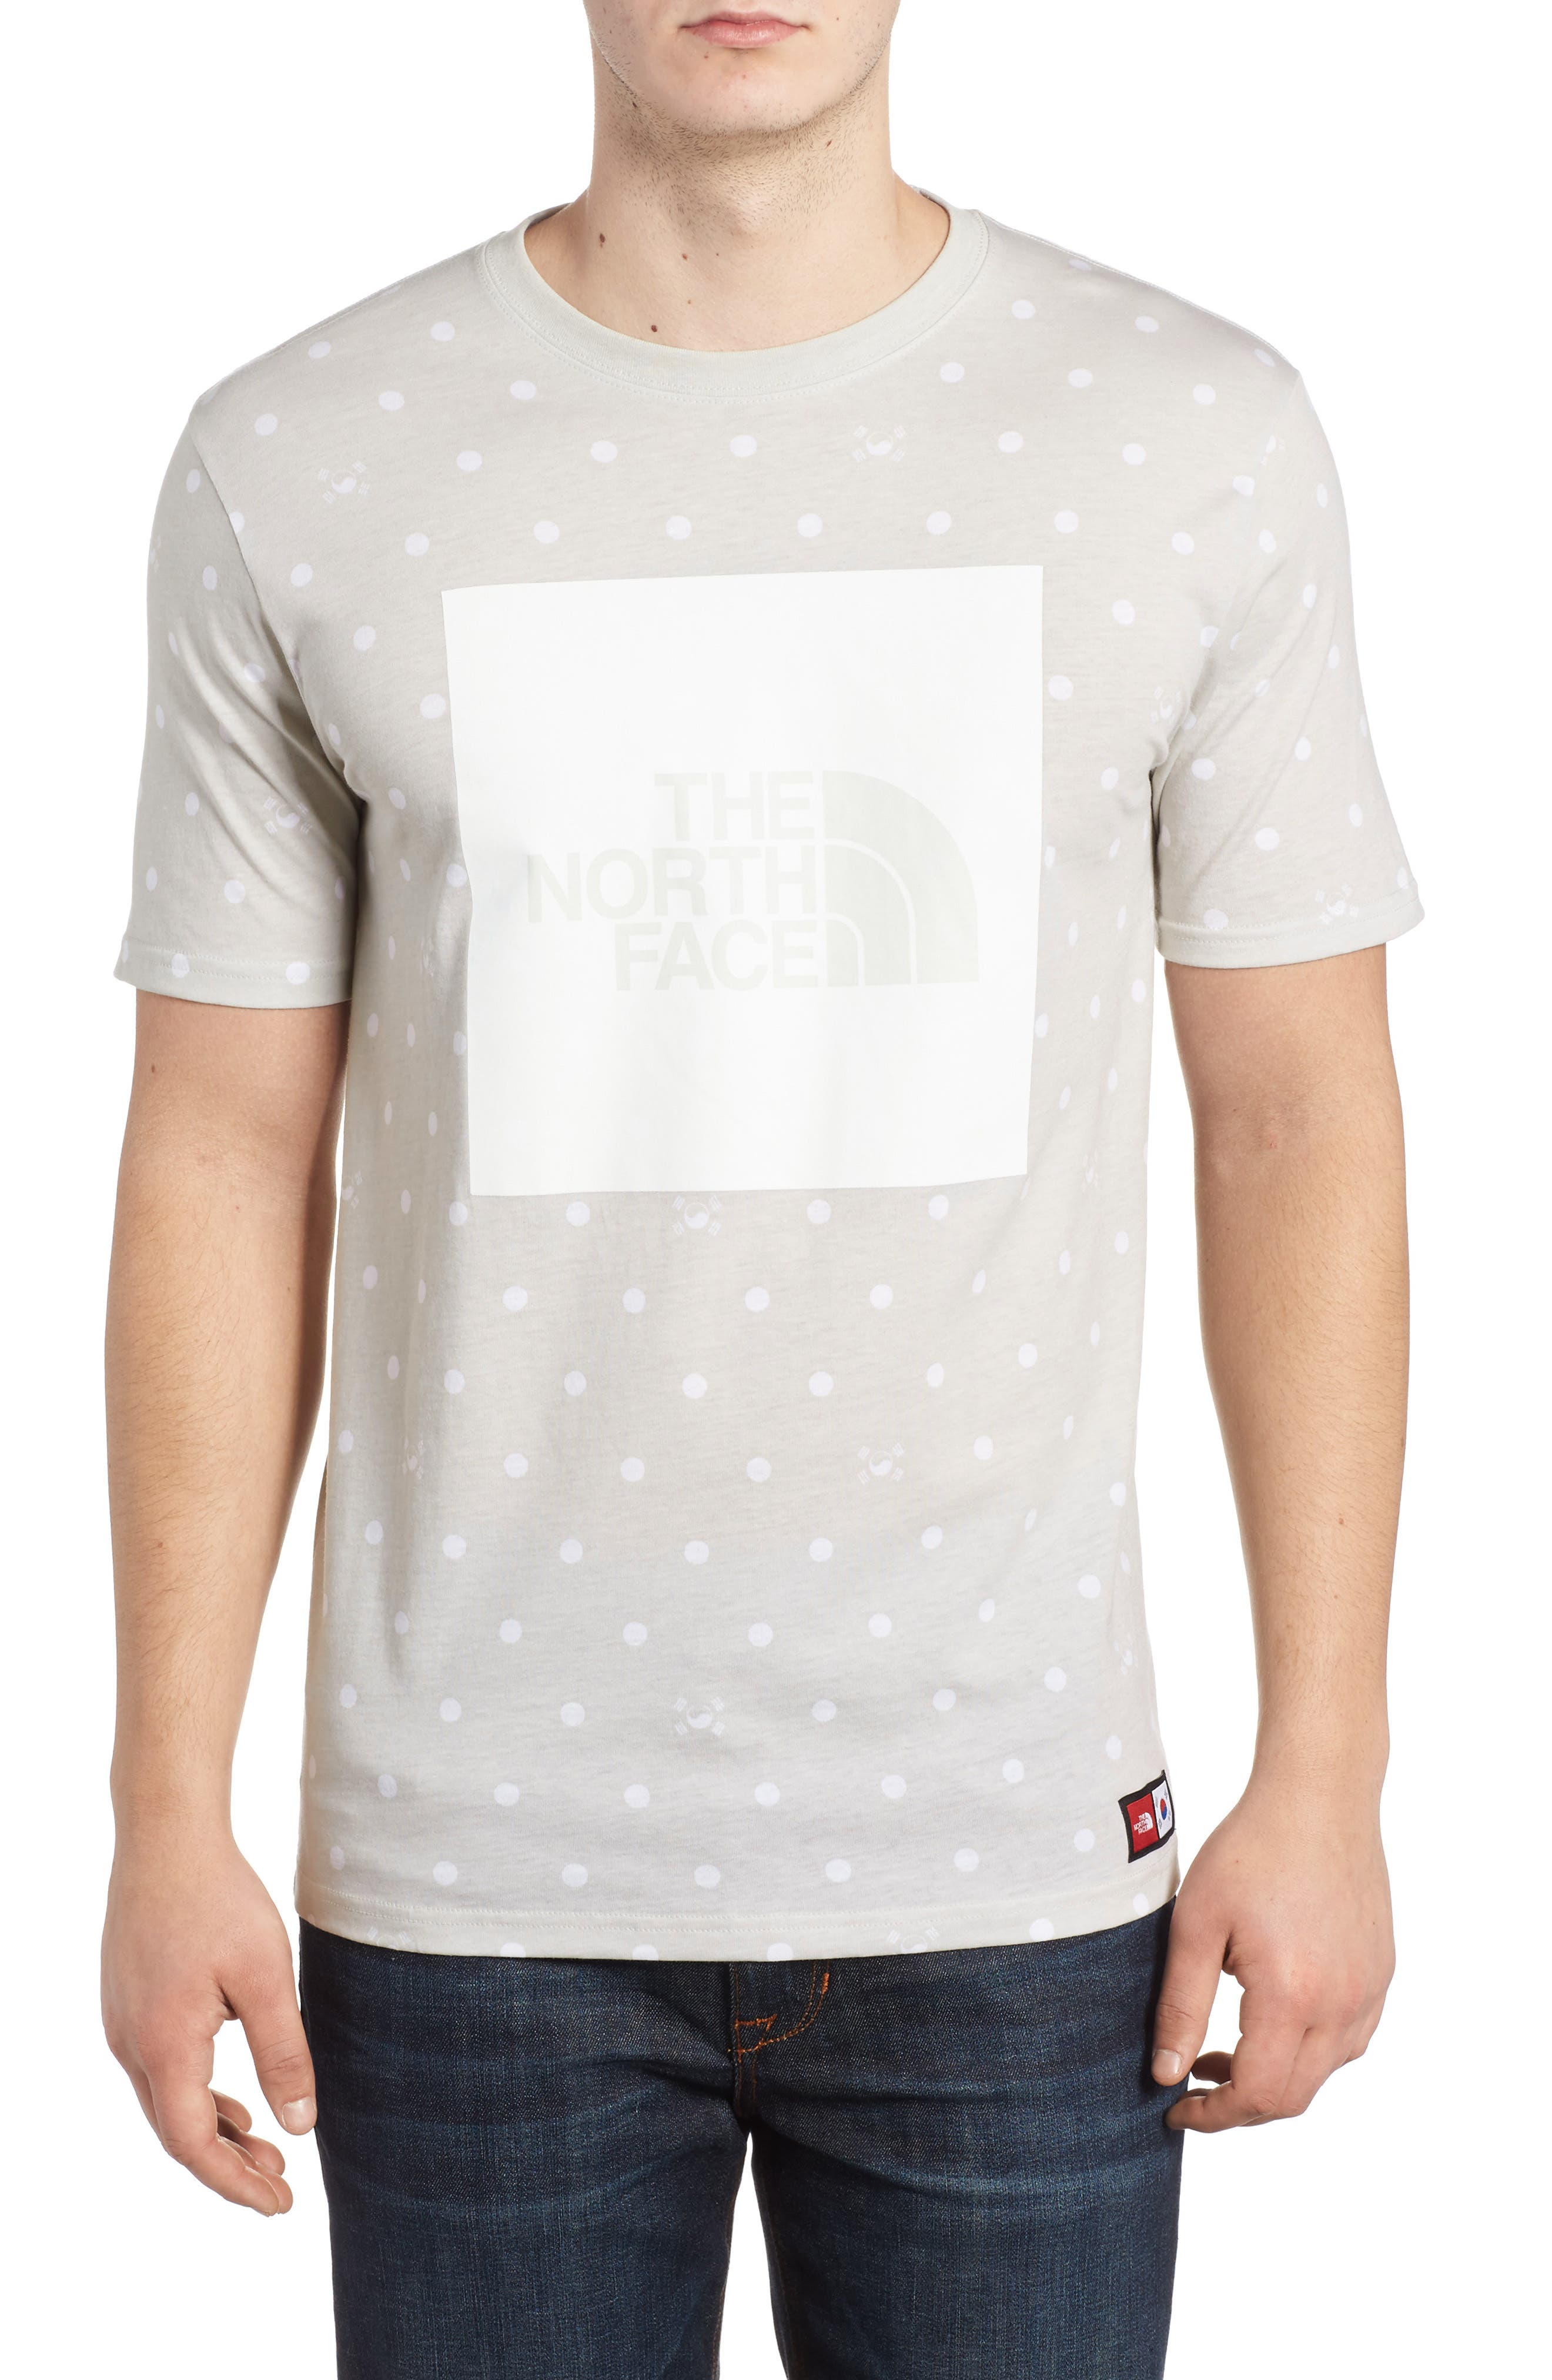 Alternate Image 1 Selected - The North Face International Collection Star Print T-Shirt